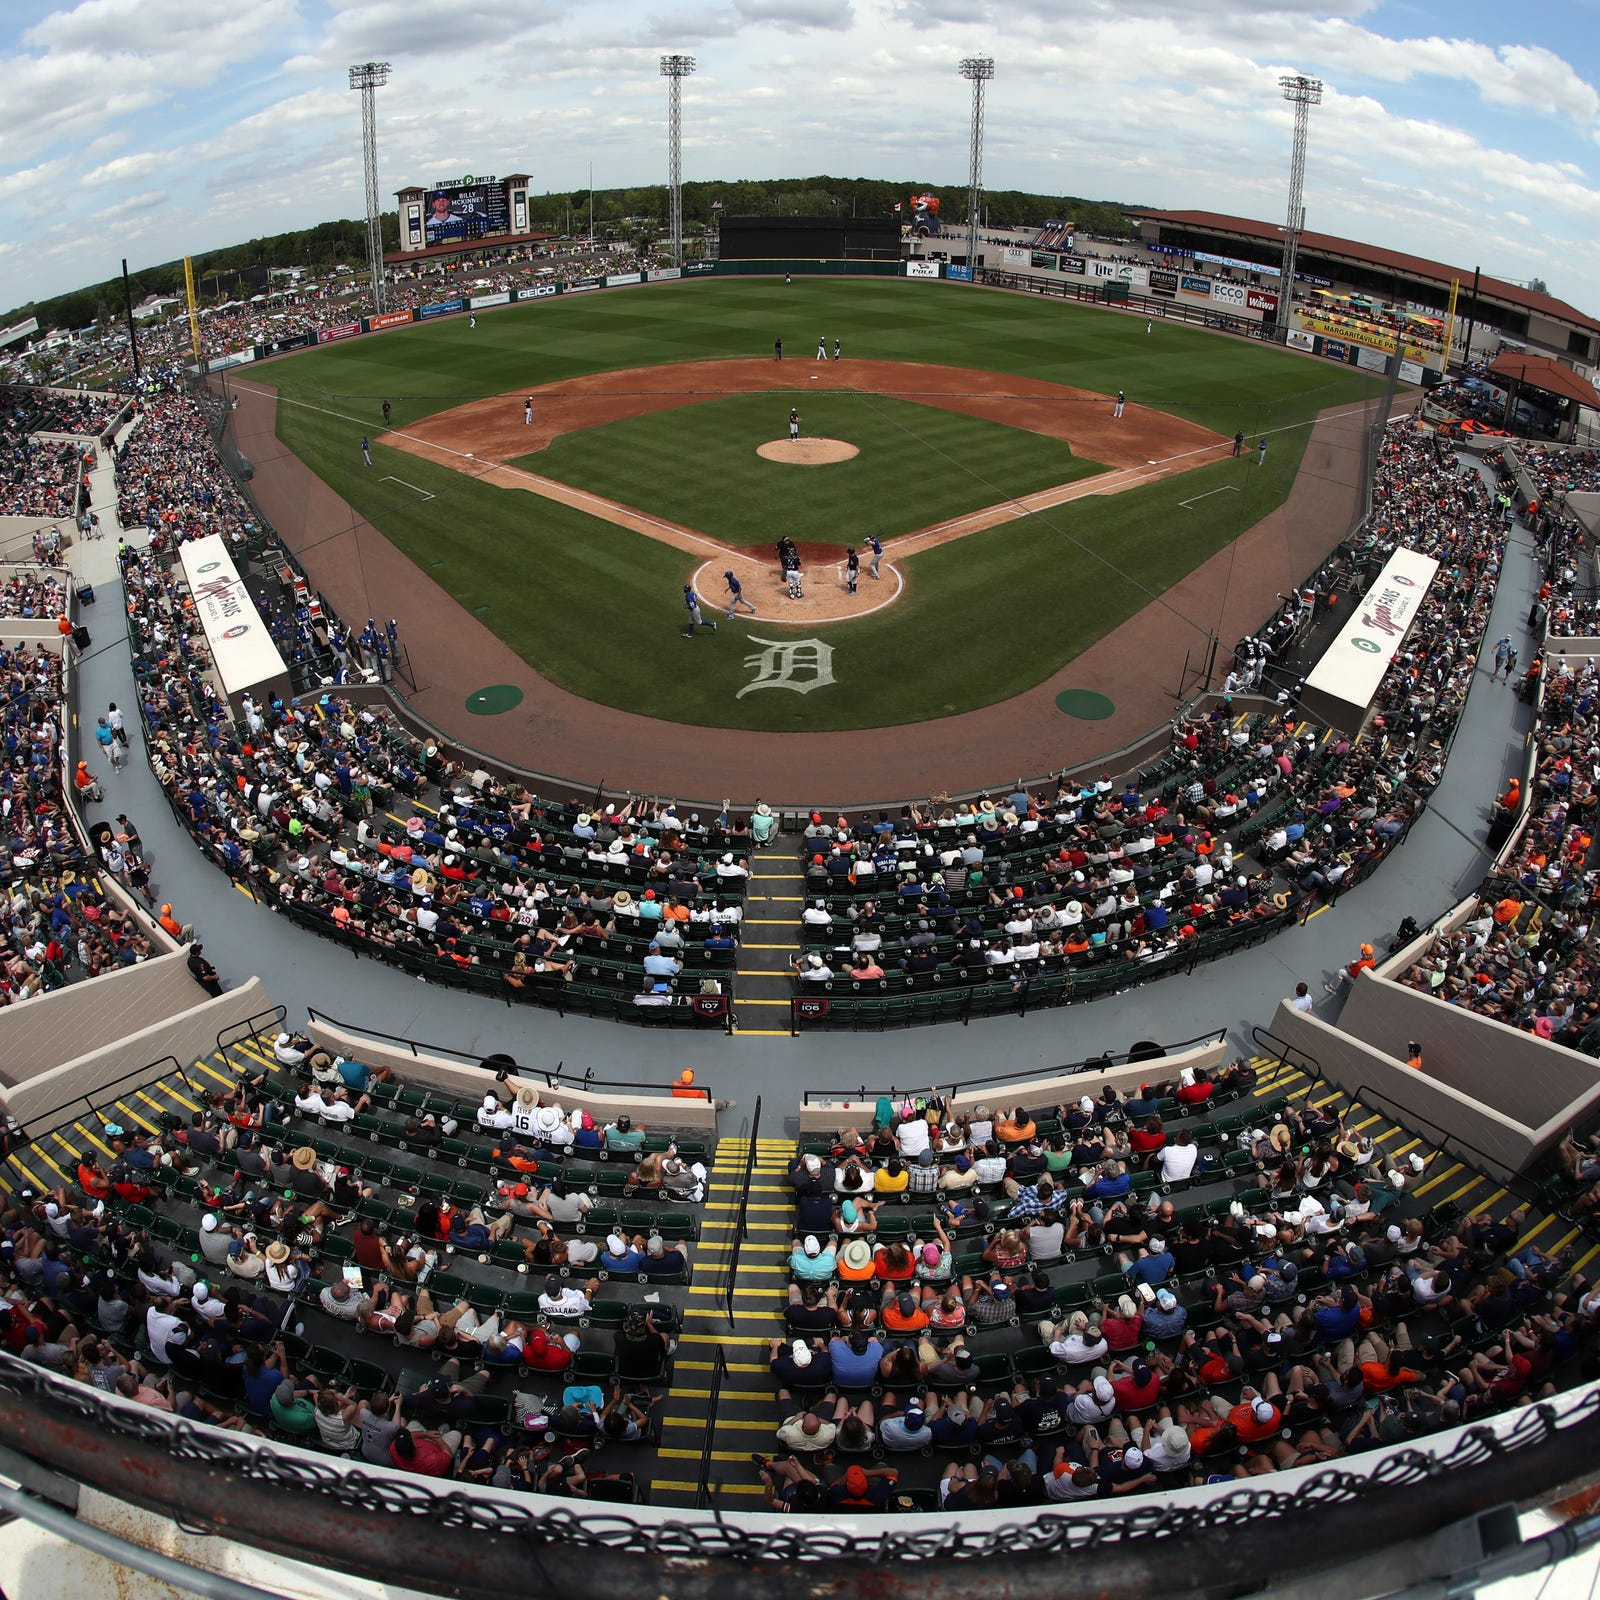 Farewell to Detroit Tigers spring training, hello to another season